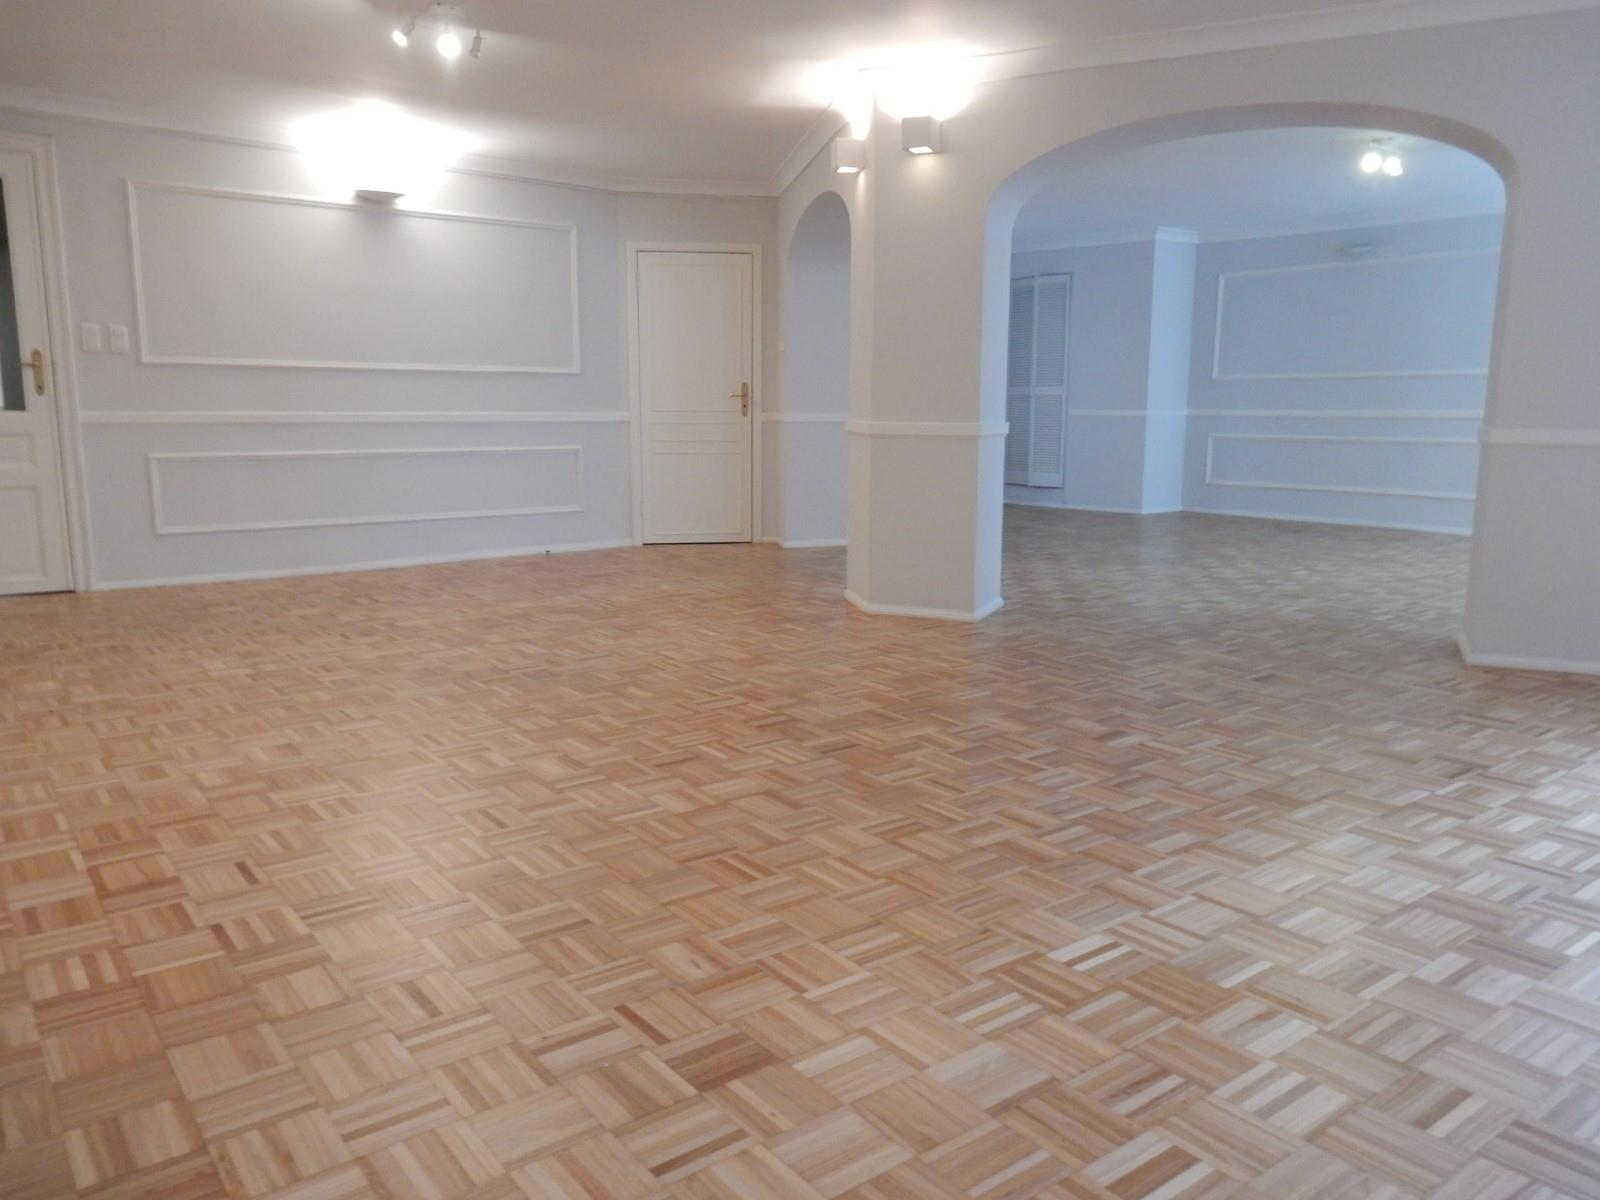 Flat in charming house - Etterbeek - #3183224-1